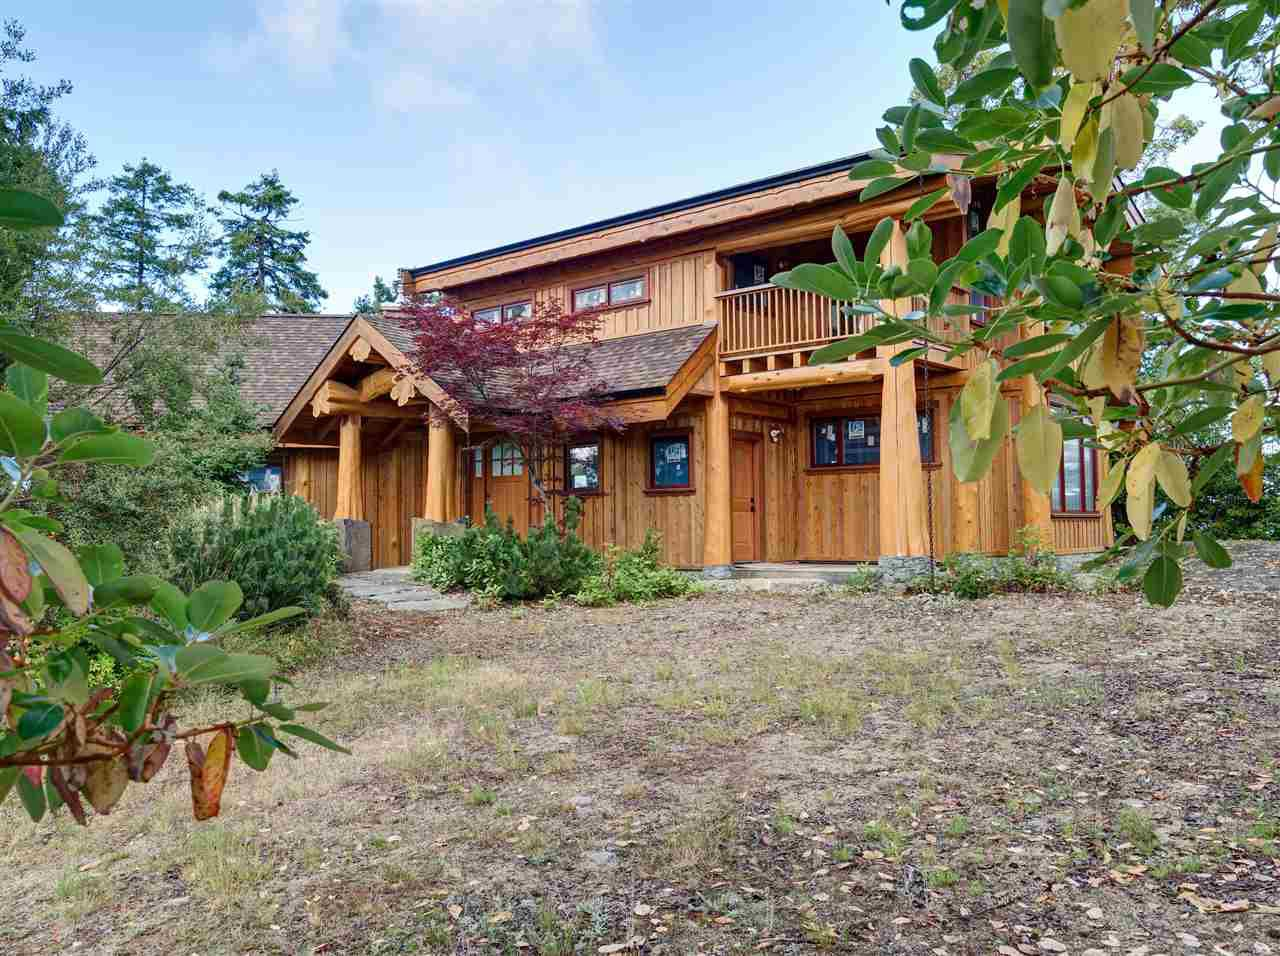 """Main Photo: 14139 MIXAL HEIGHTS Road in Garden Bay: Pender Harbour Egmont House for sale in """"MIXAL HEIGHTS"""" (Sunshine Coast)  : MLS®# R2491690"""